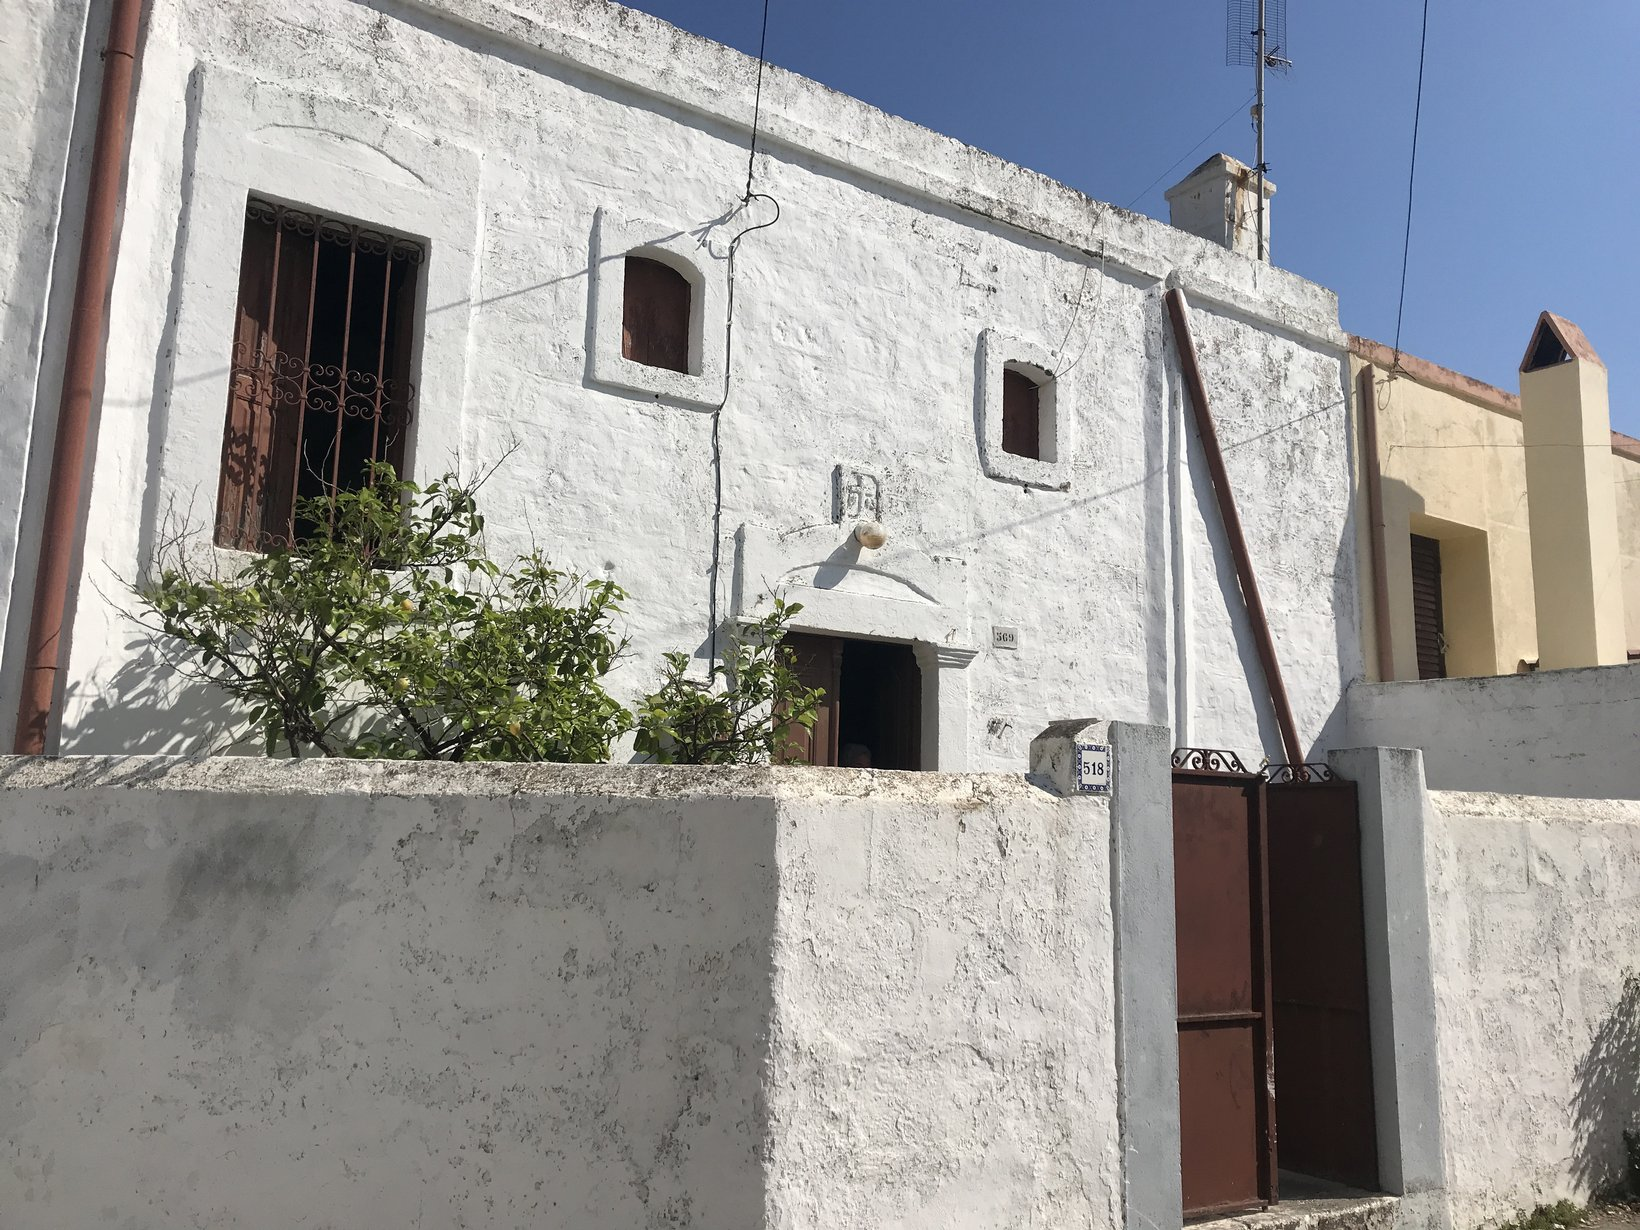 For sale TRADITIONAL HOUSE 45.000€ MALONA (code K-3222)